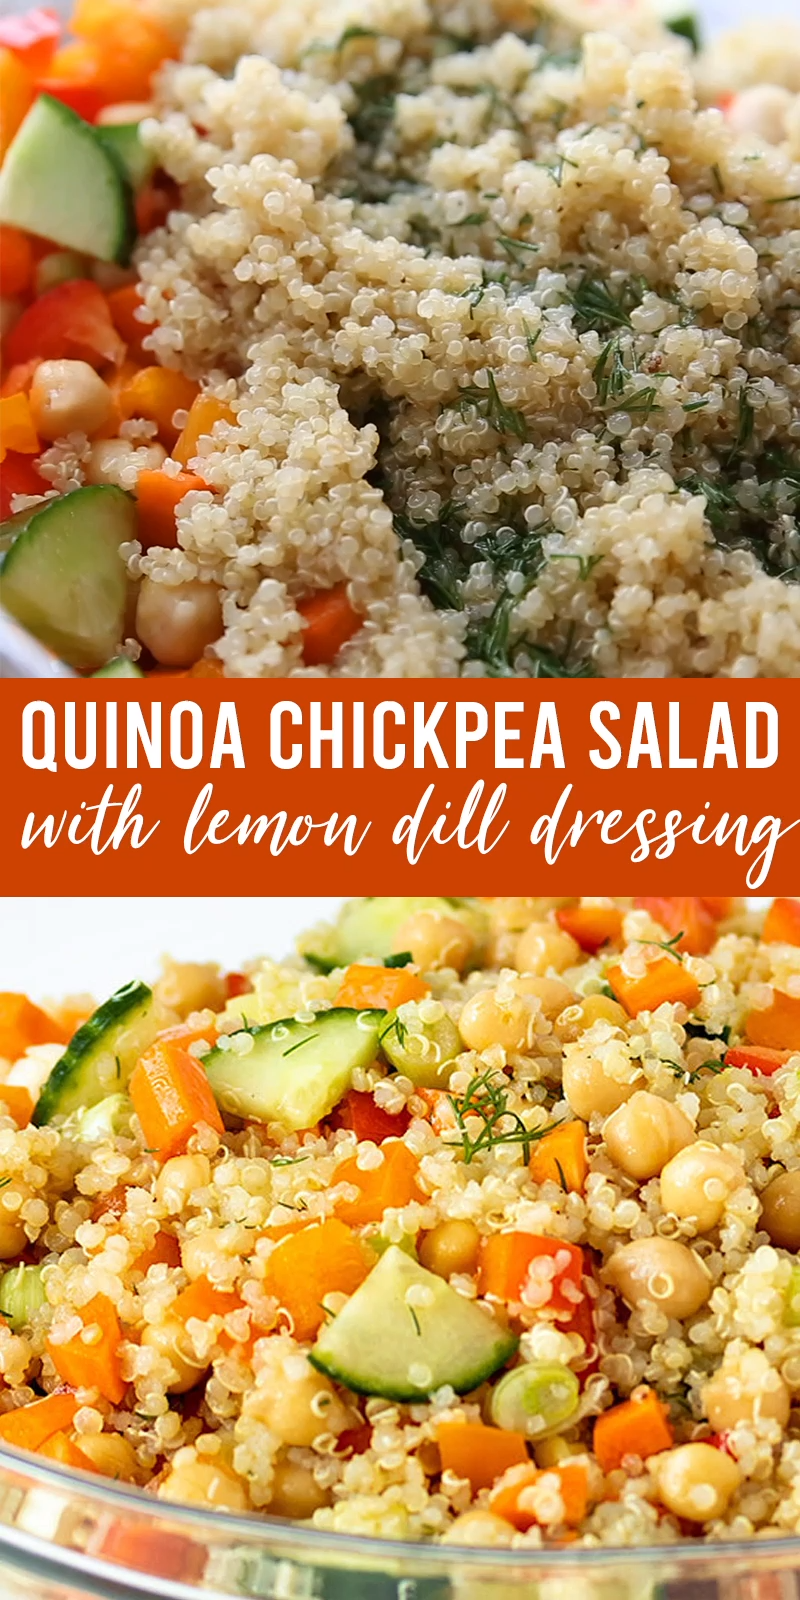 Quinoa Chickpea Salad with Lemon Dill Dressing